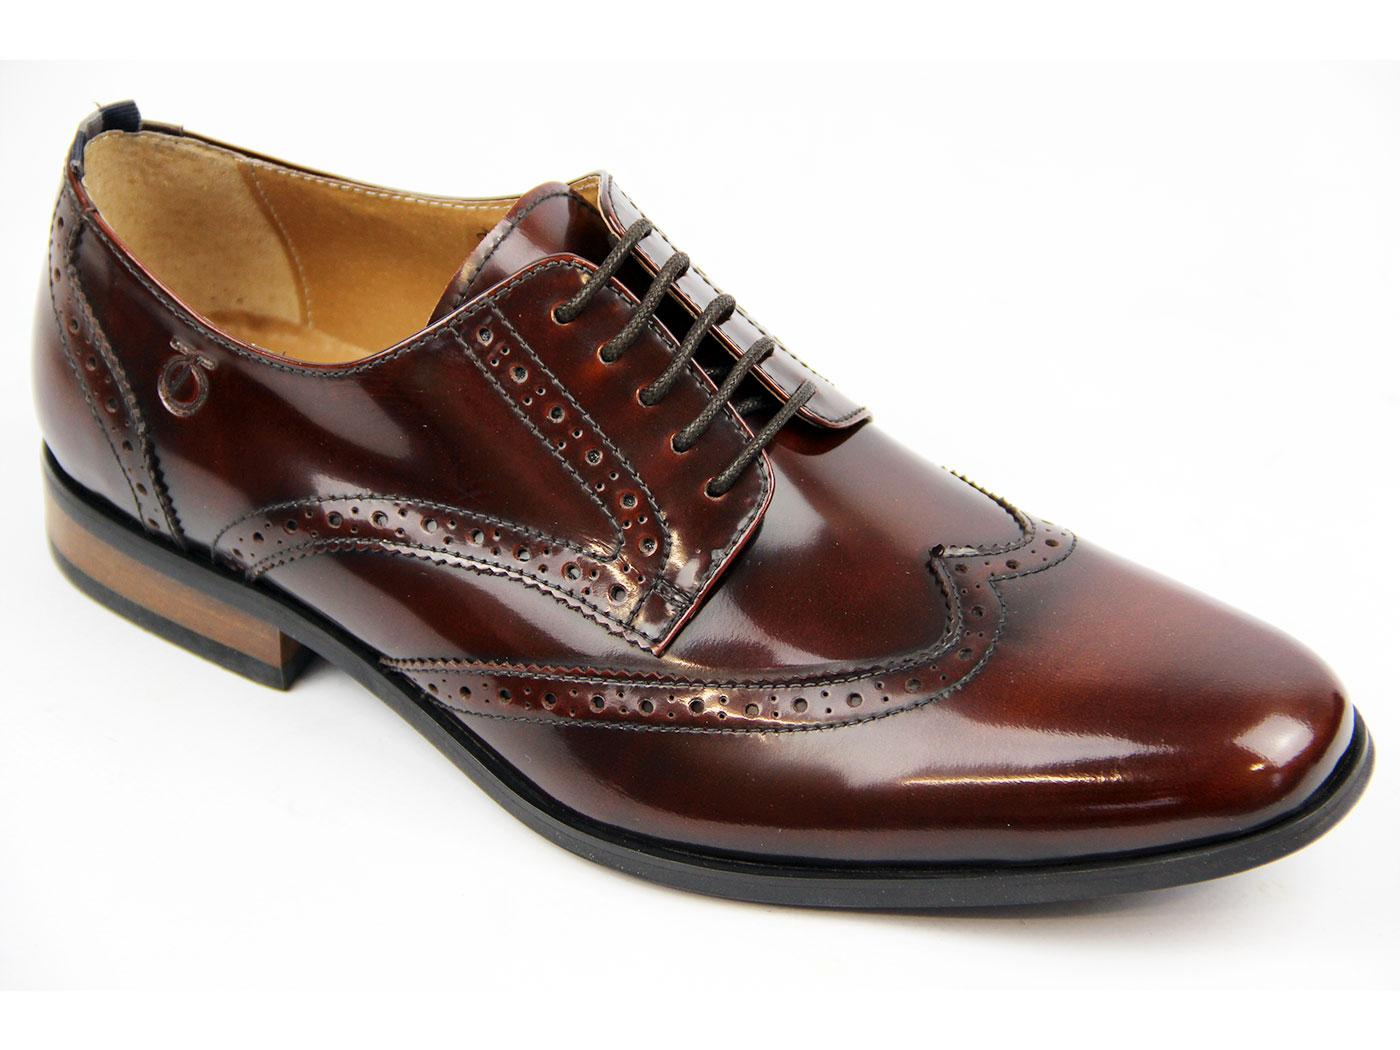 Battishill PETER WERTH Retro Mo High Shine Brogues